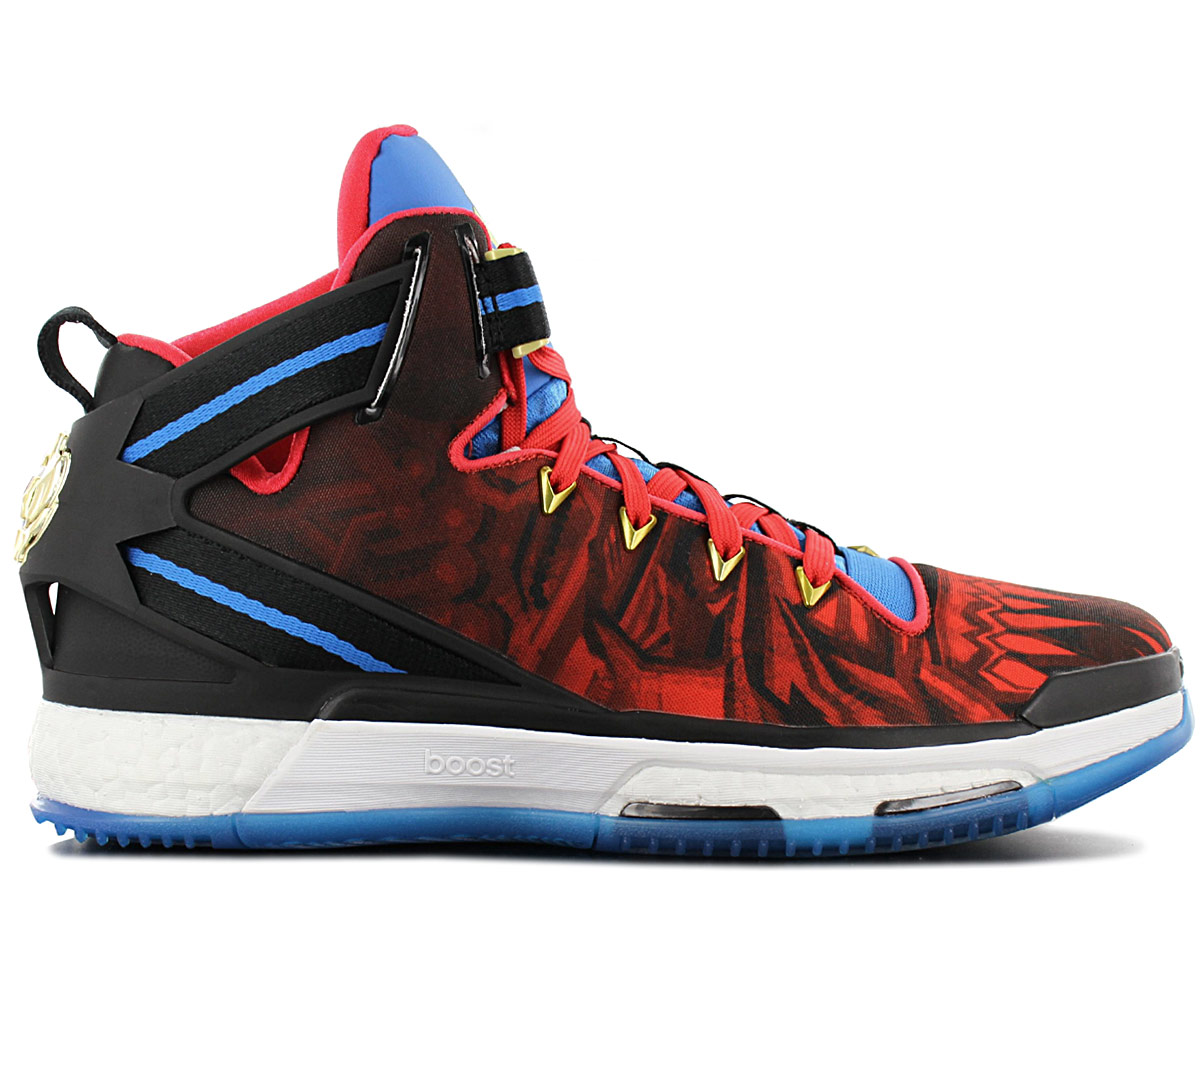 adidas d rose 6 march madness